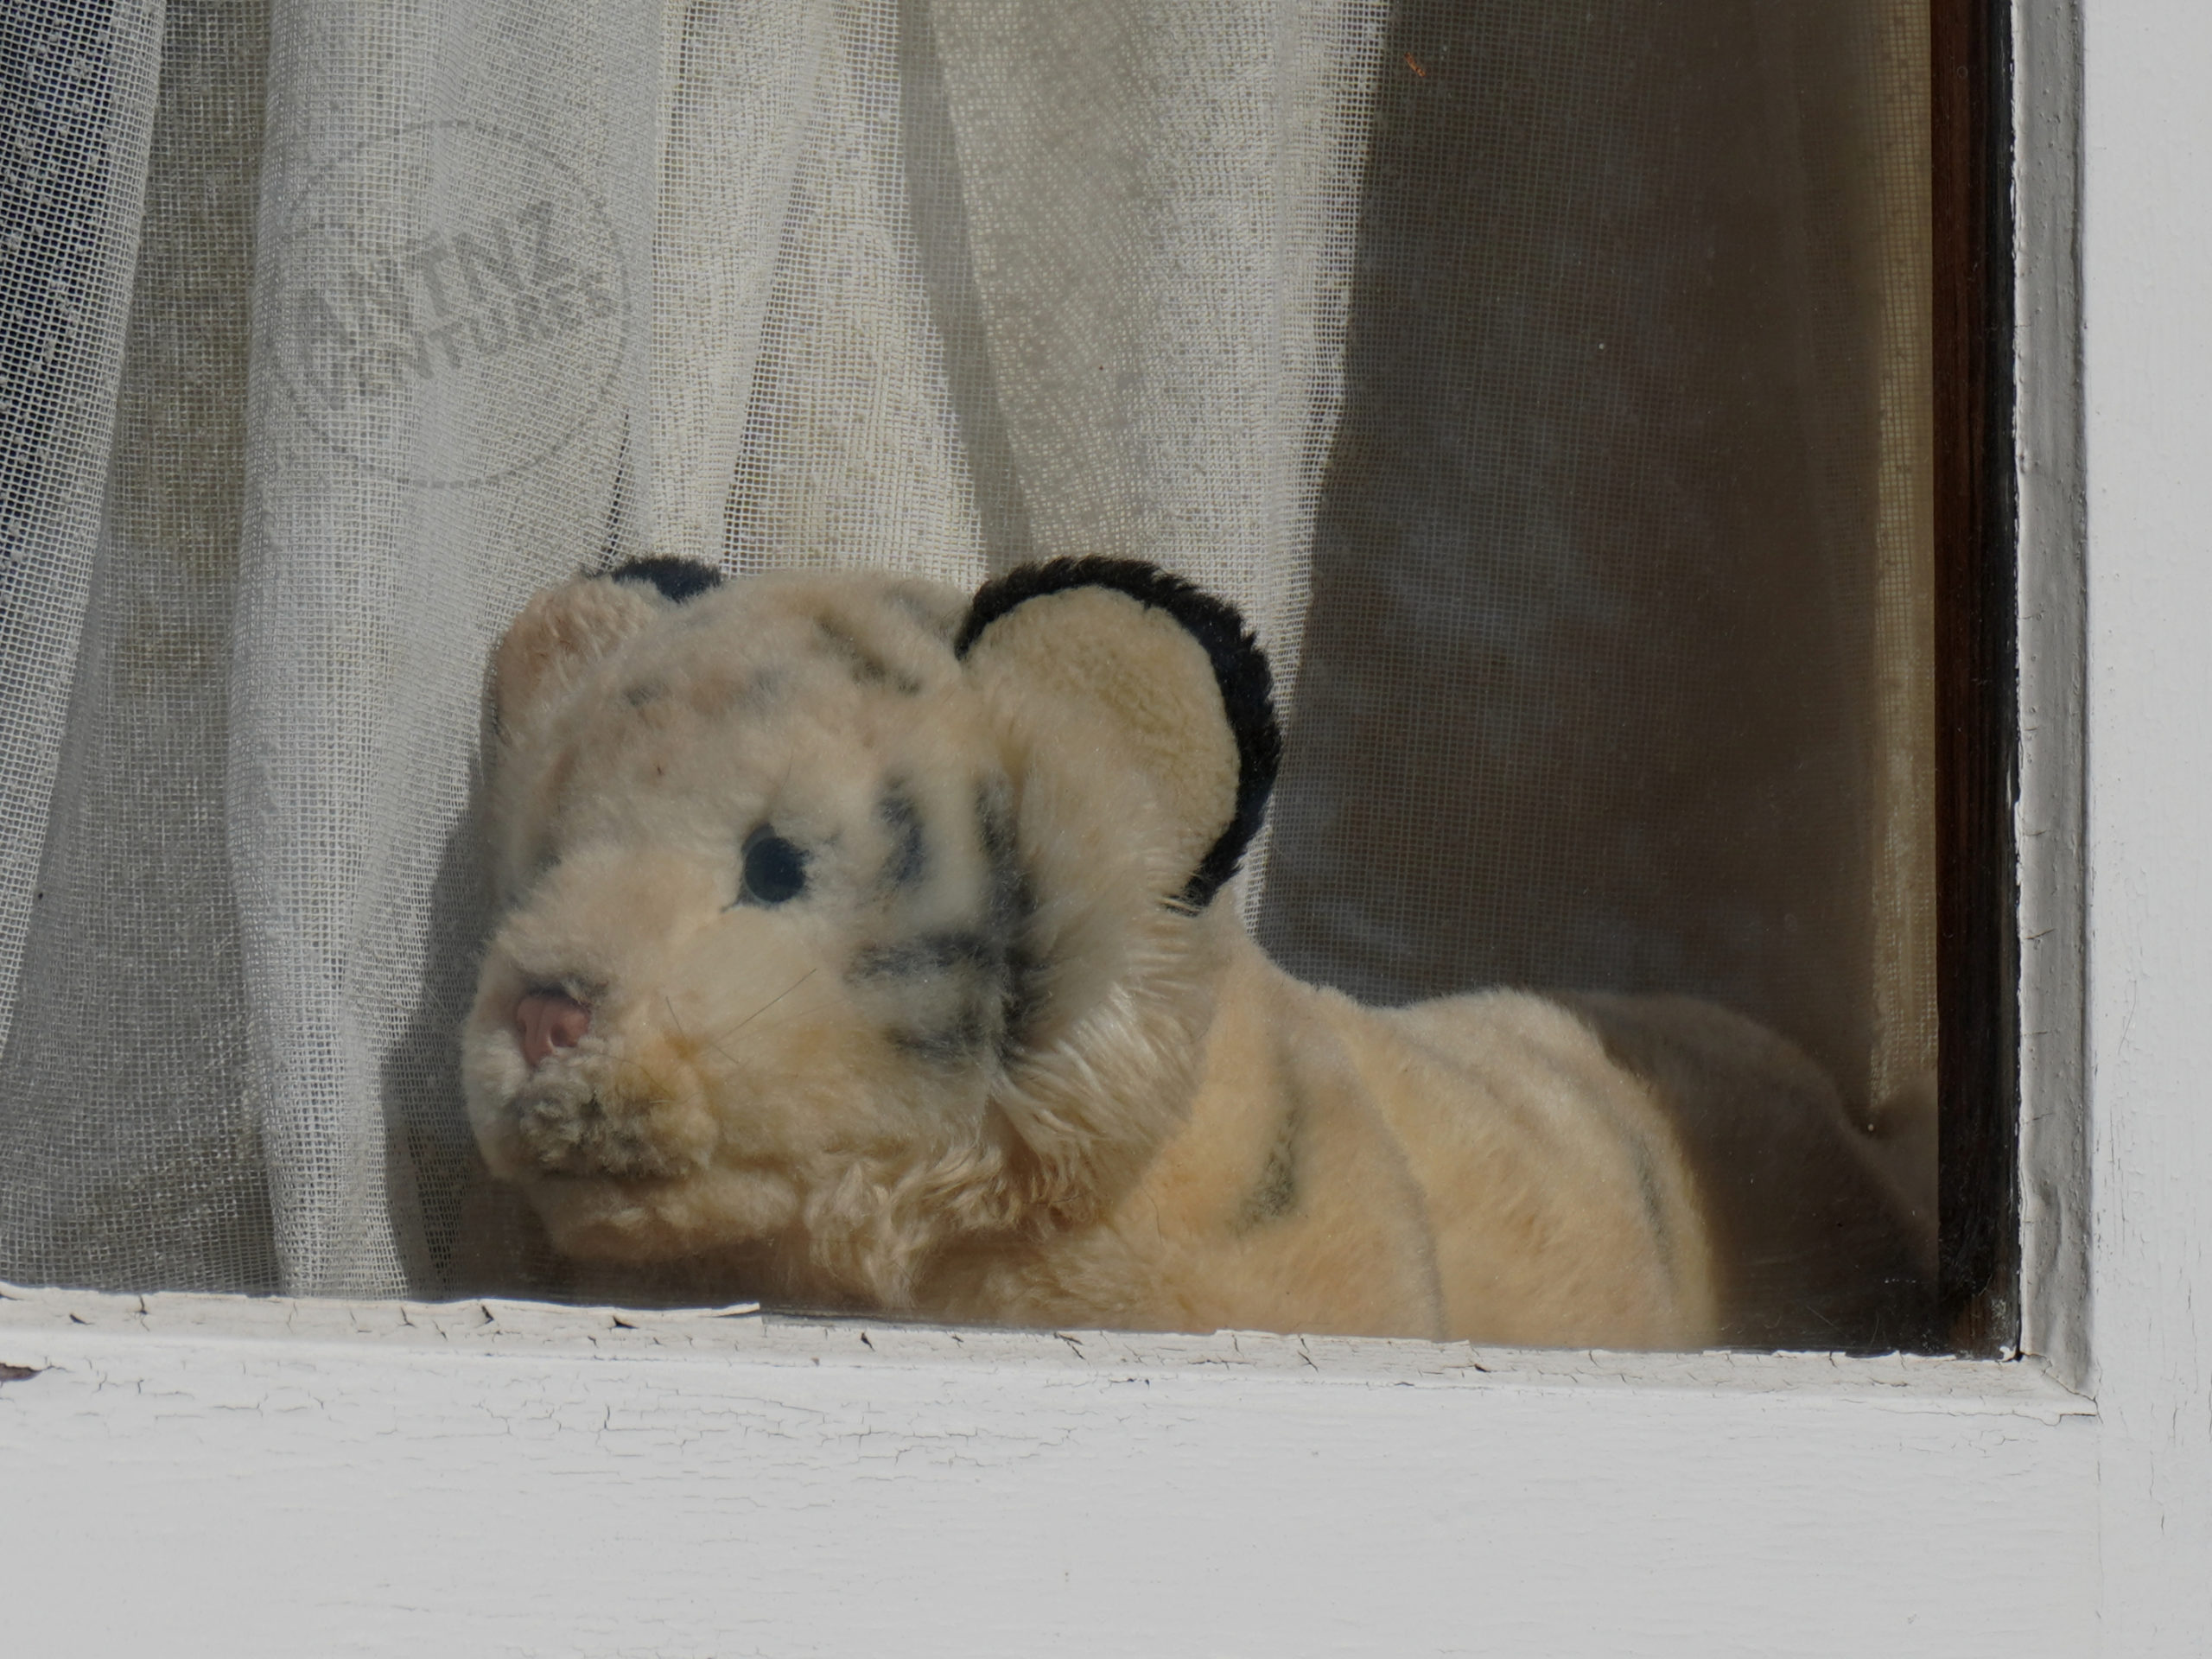 A stuffed white tiger sitting on a windowsill. The tiger is behind glass but in front of net curtain